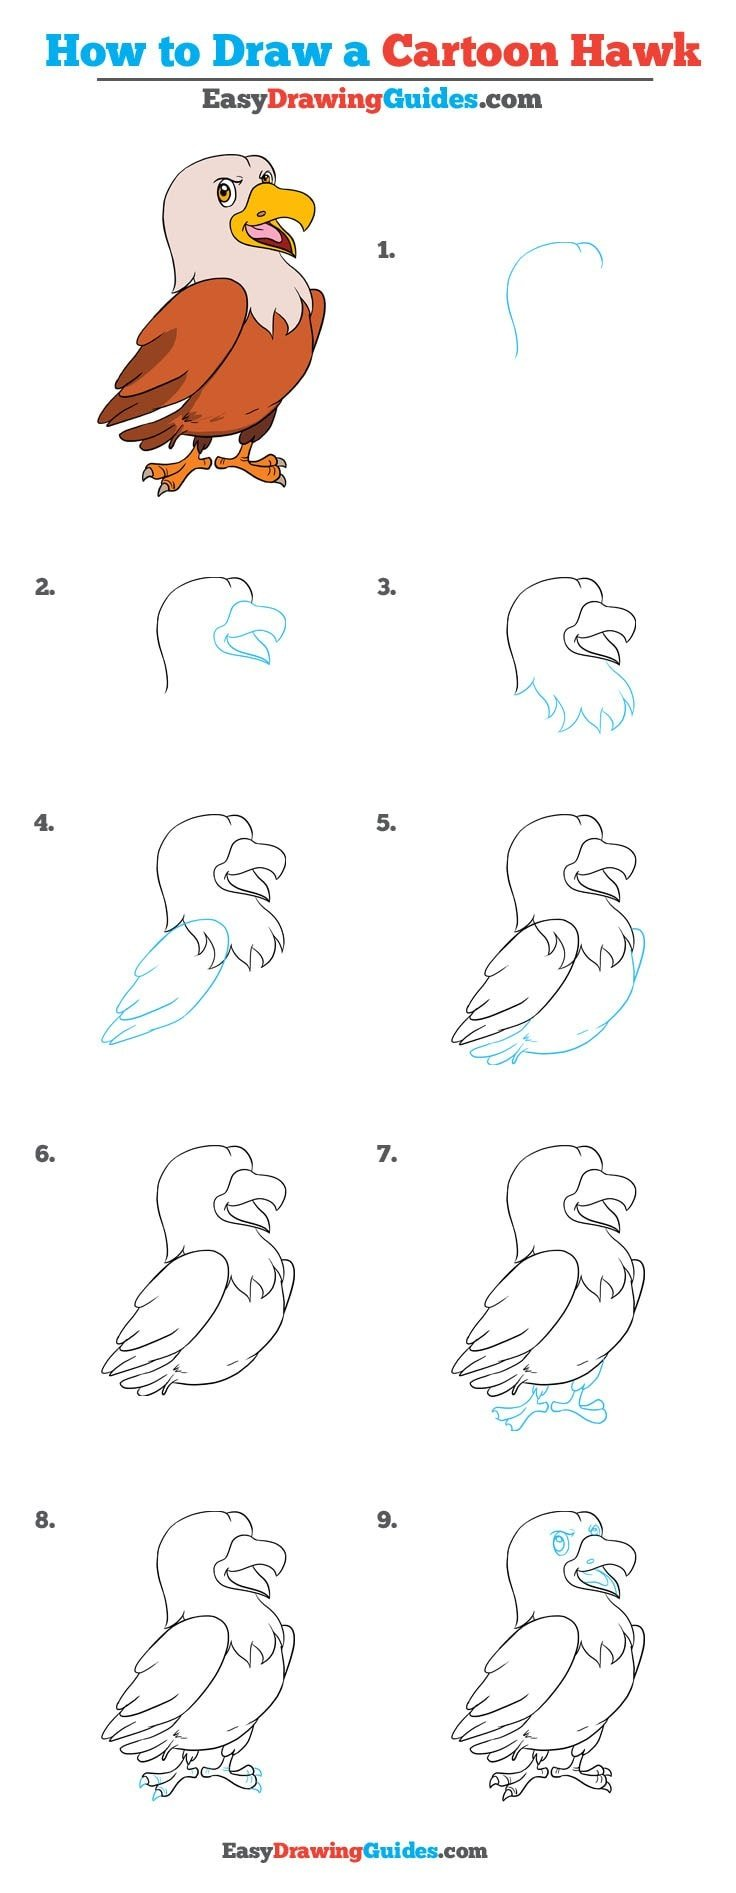 How to Draw Cartoon Hawk